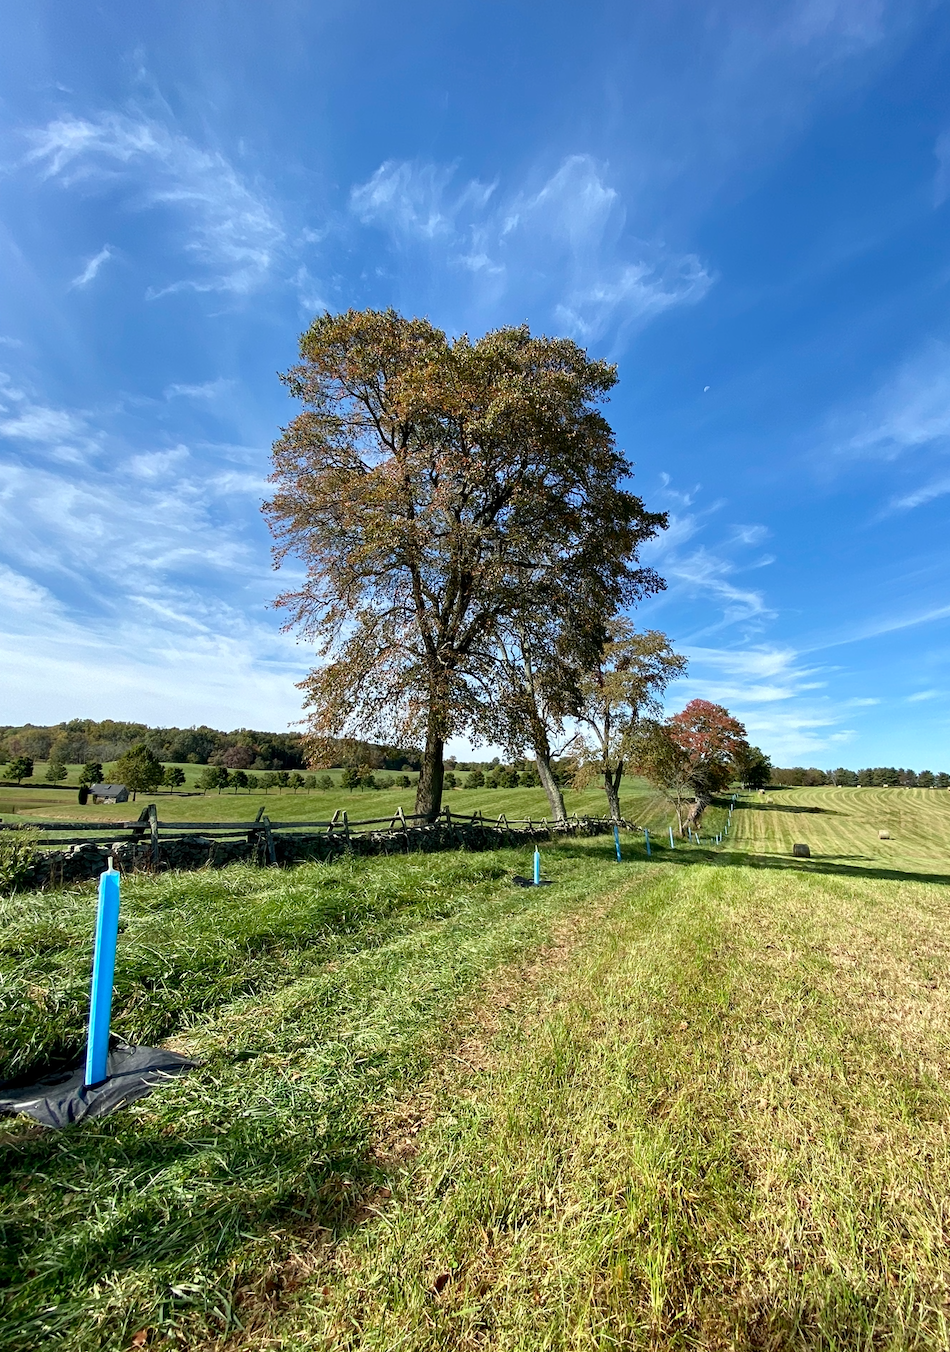 a large tree in a field